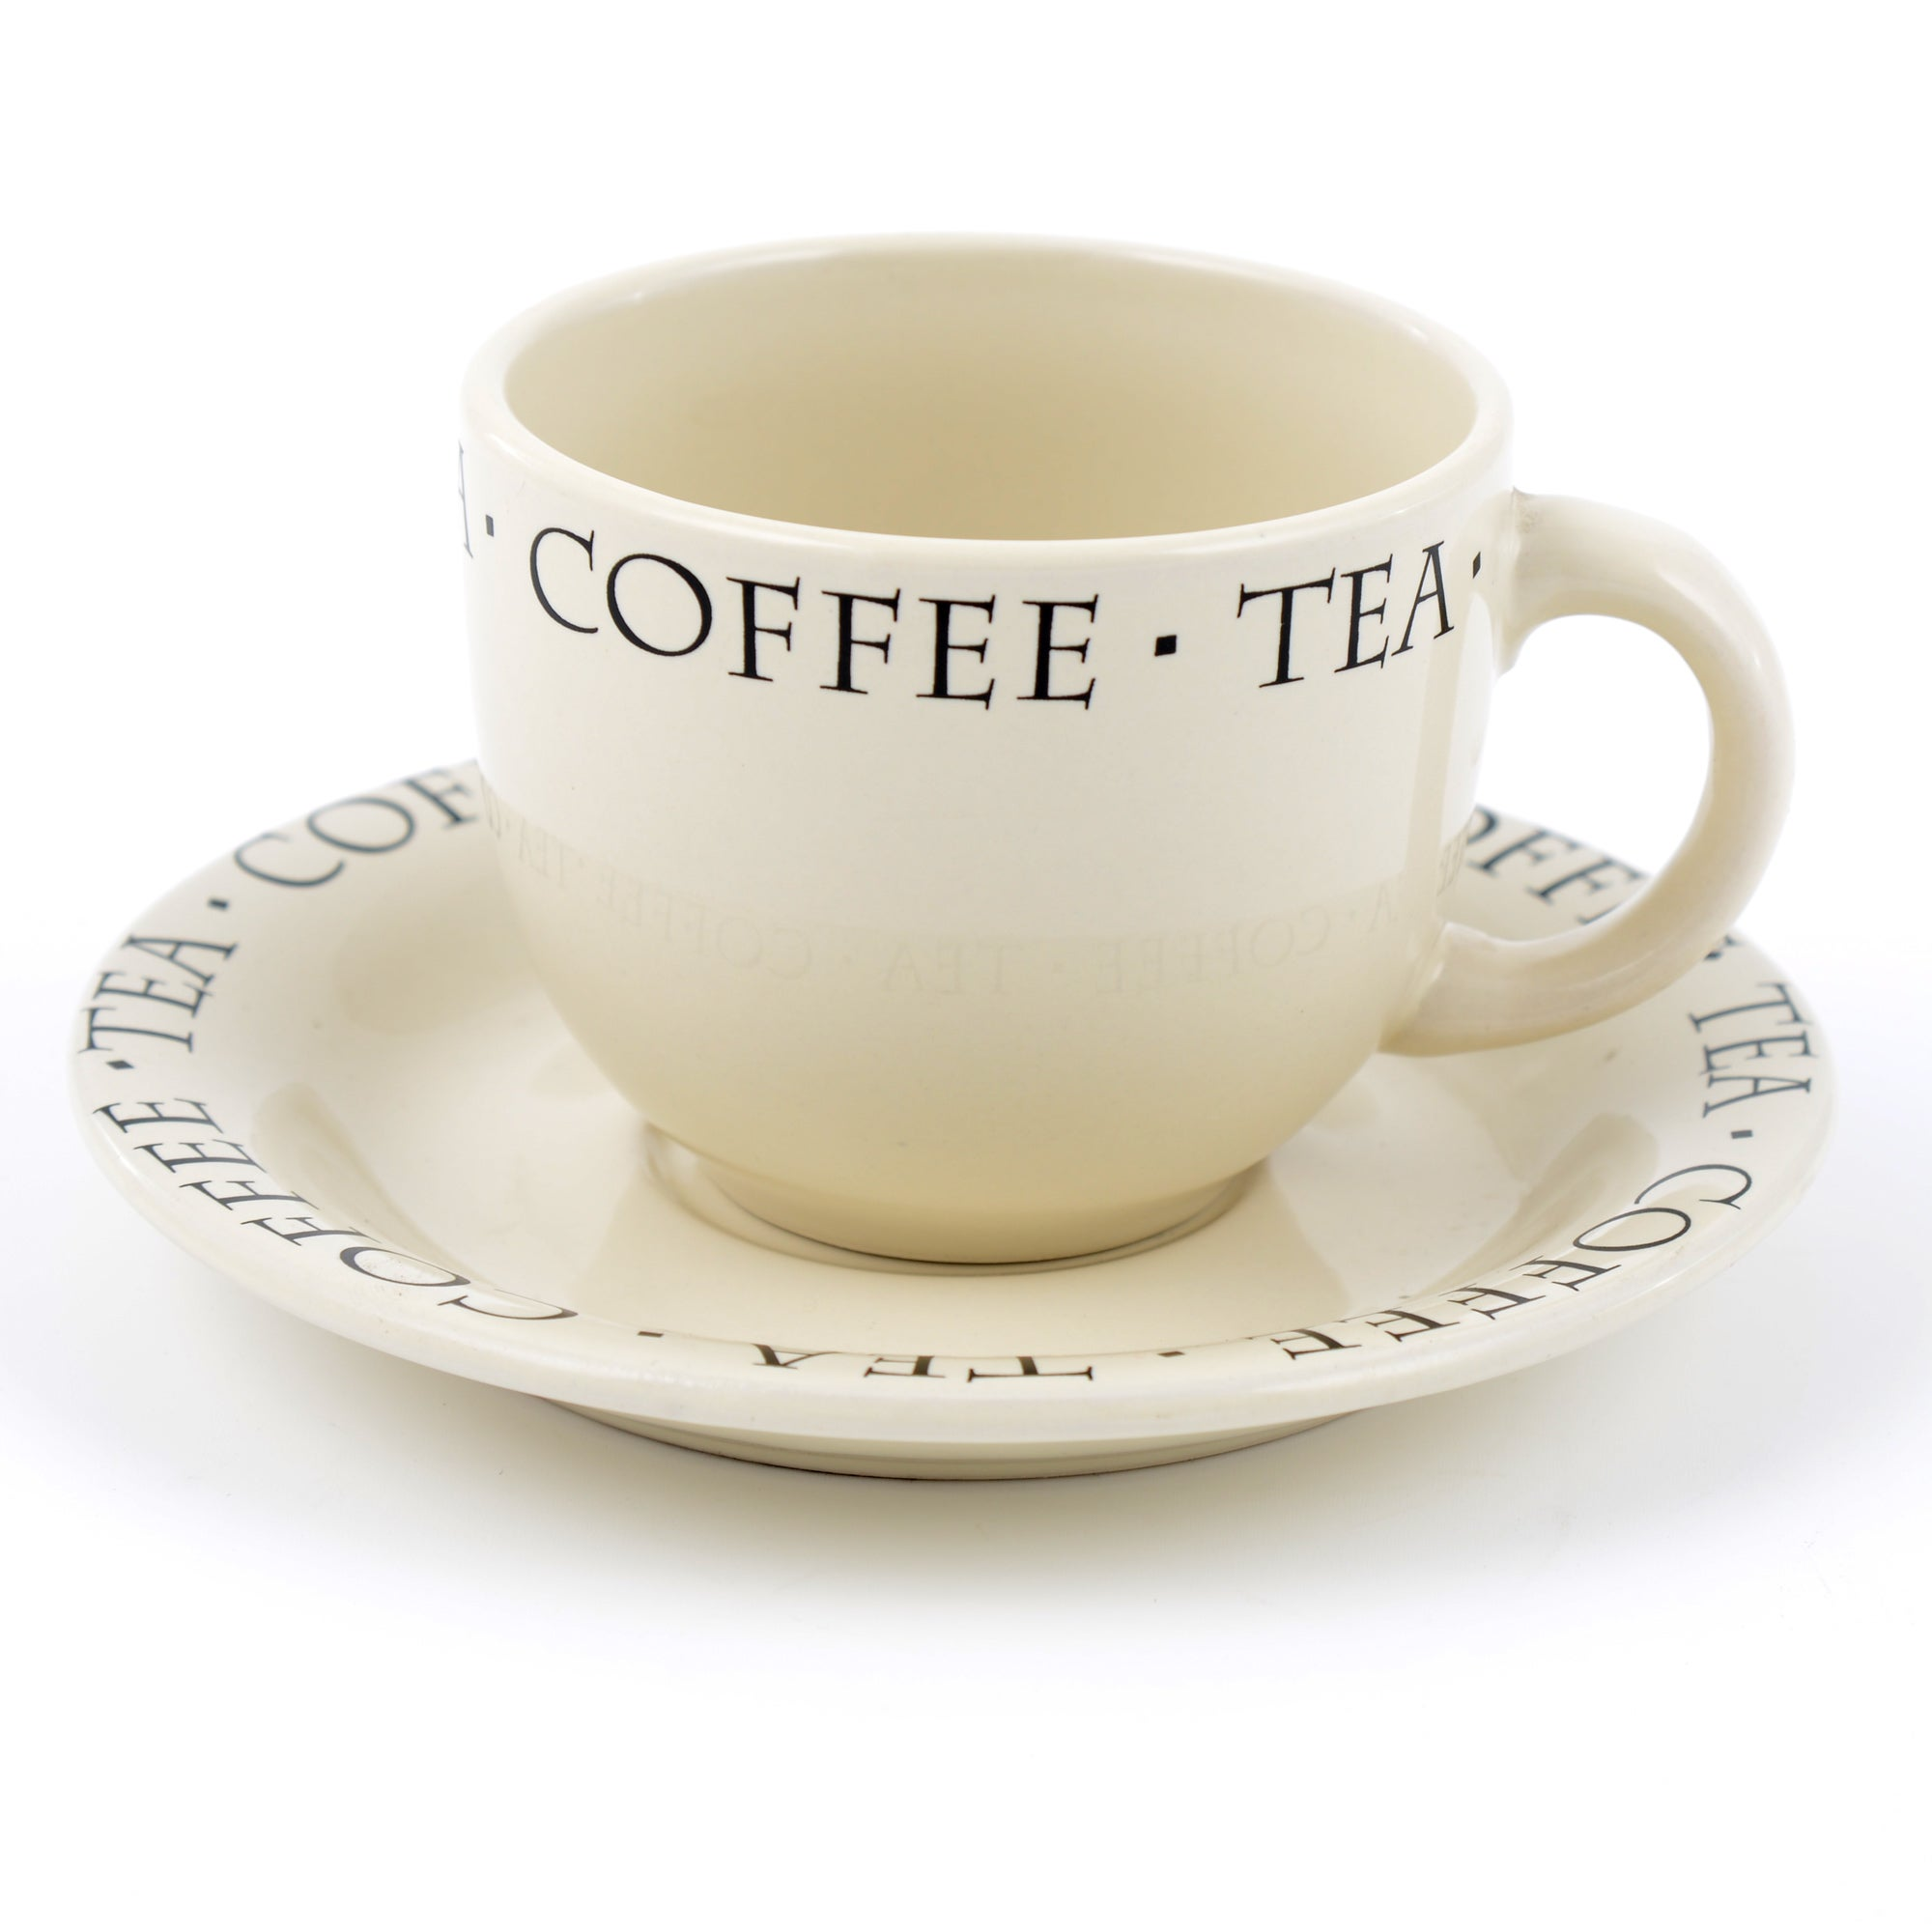 Glorious Food Collection Tea Cup & Saucer